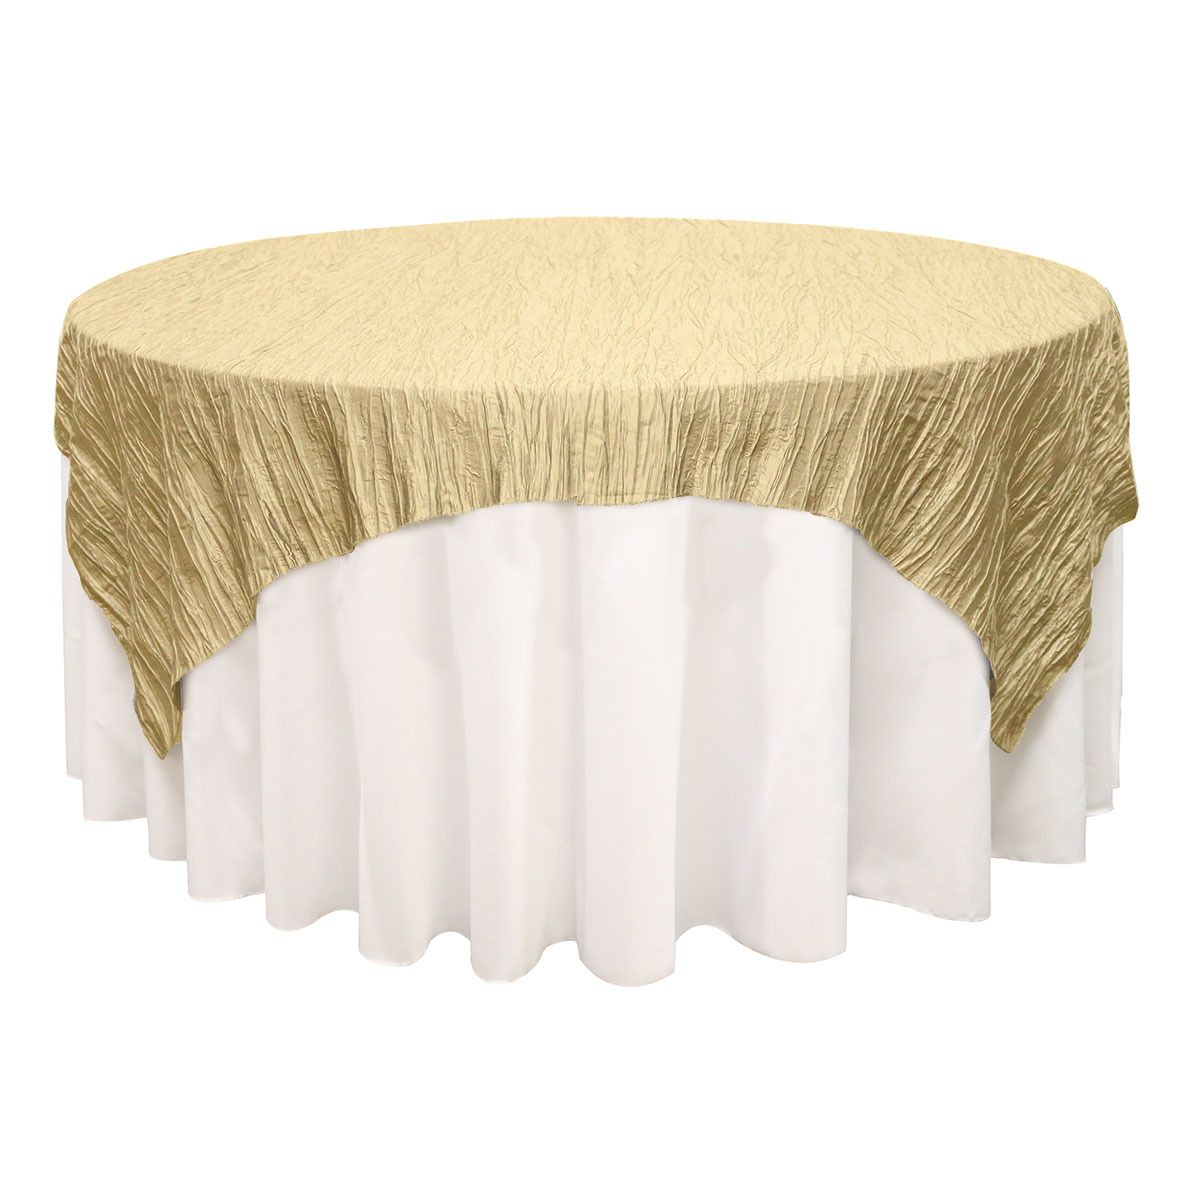 72 Inch Square Crinkle Taffeta Table Overlay Champagne Table Overlays Wedding Table Overlays Wedding Tablecloths